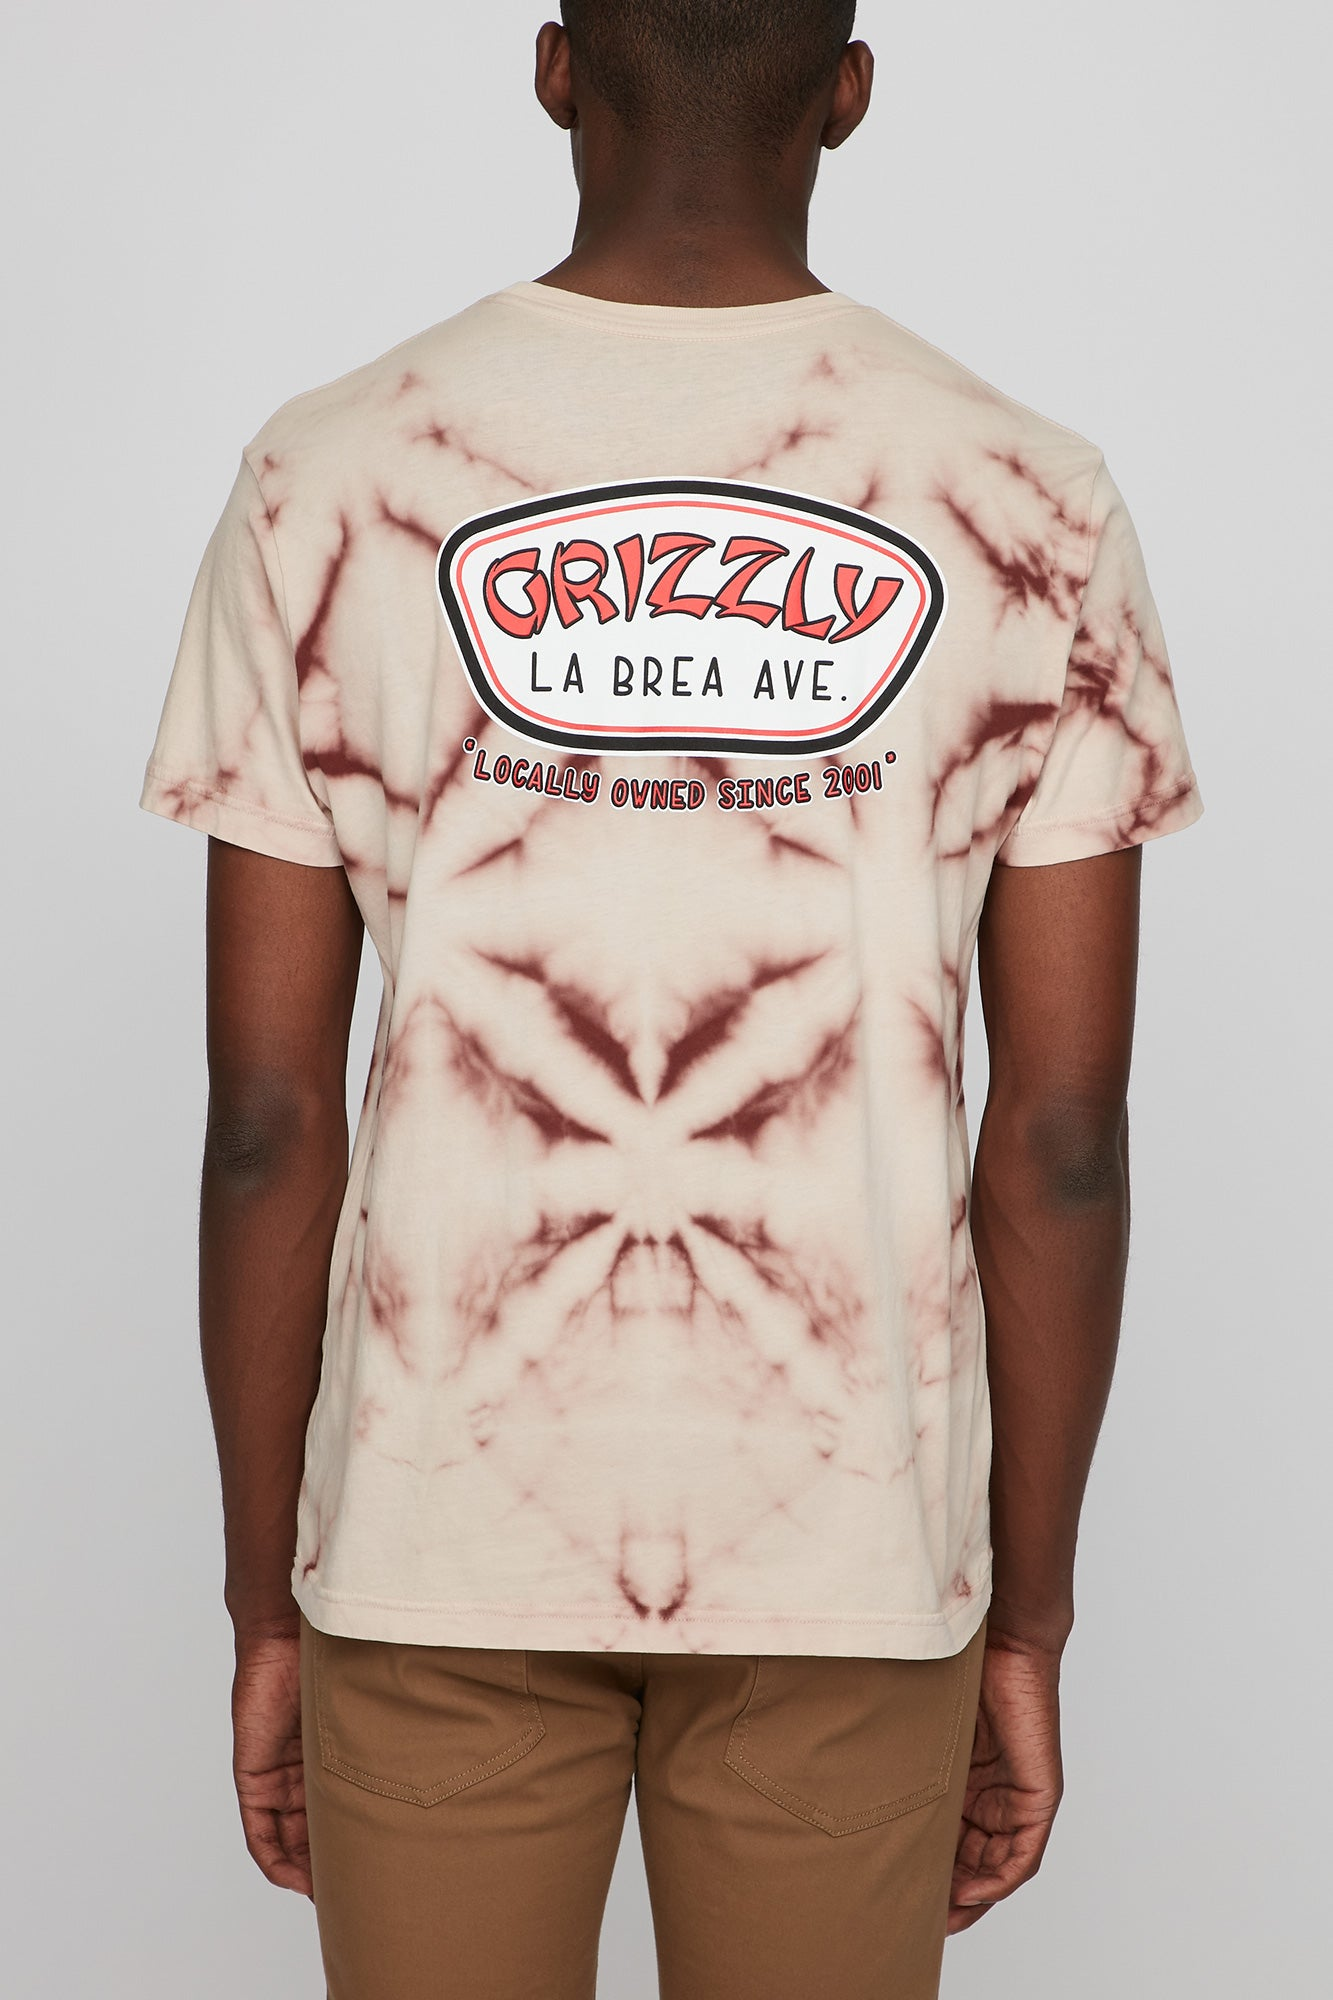 Grizzly Guys La Brea Ave. Tee